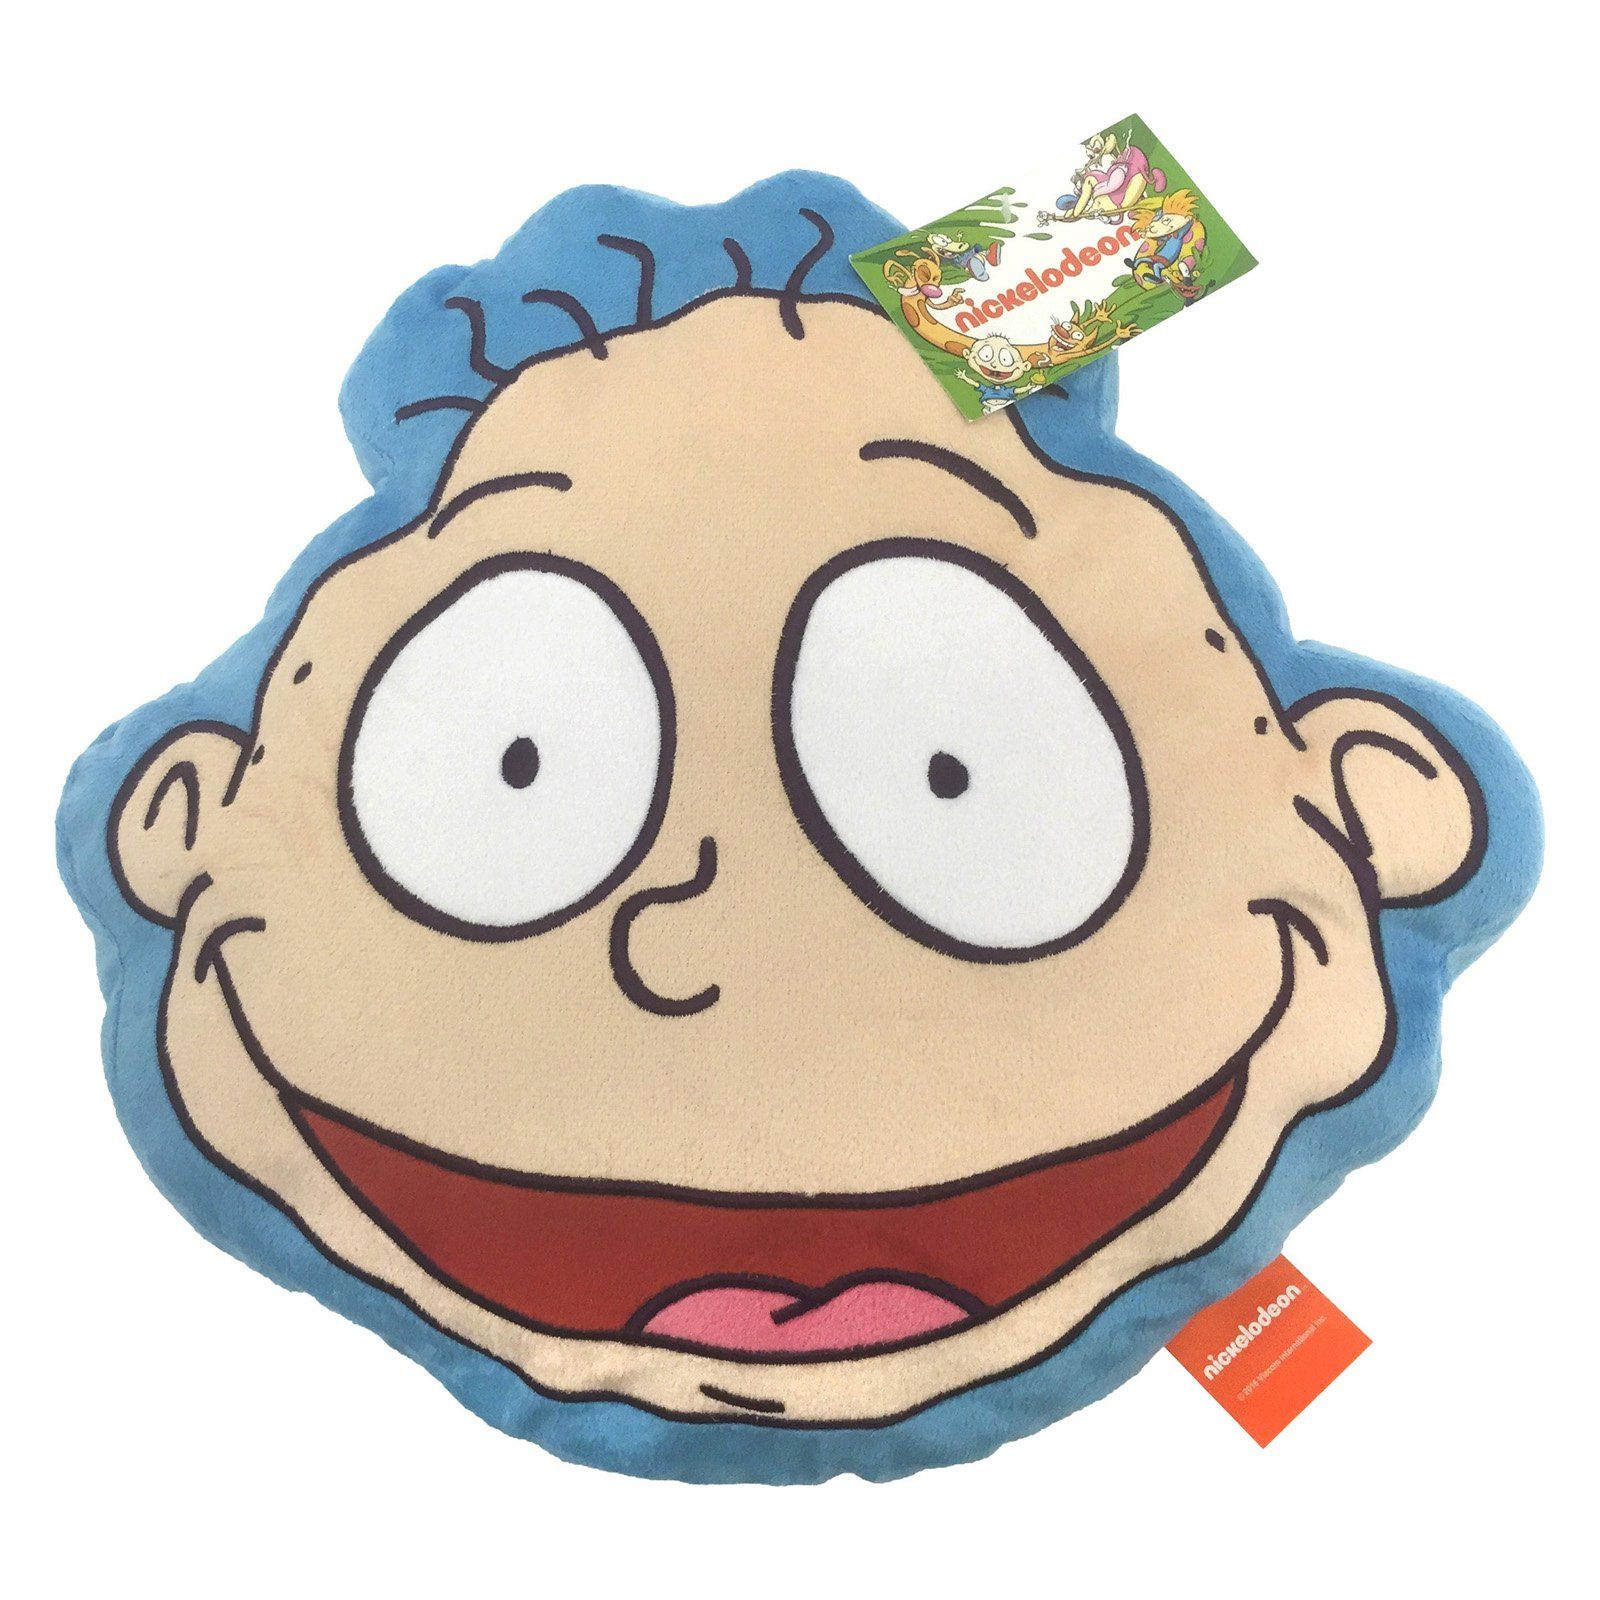 Tommy Pickles Ice Cream Tattoo On His Face: 90s Rugrats Tommy Pickles Face Pillow By Nickelodeon In